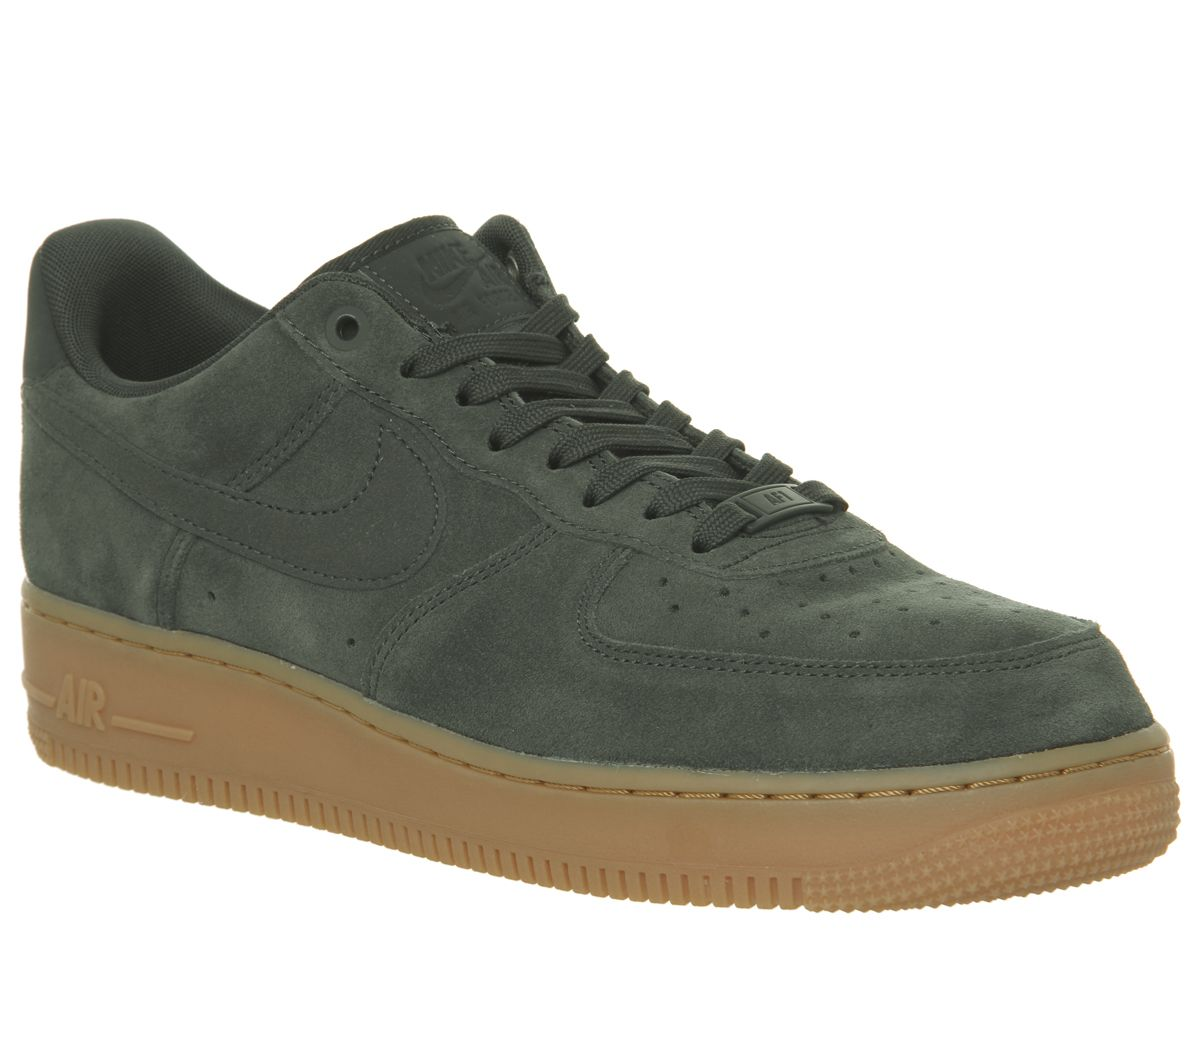 finest selection 984f2 24abf Nike Nike Air Force One Trainers Outdoor Green Suede Gum - His trainers